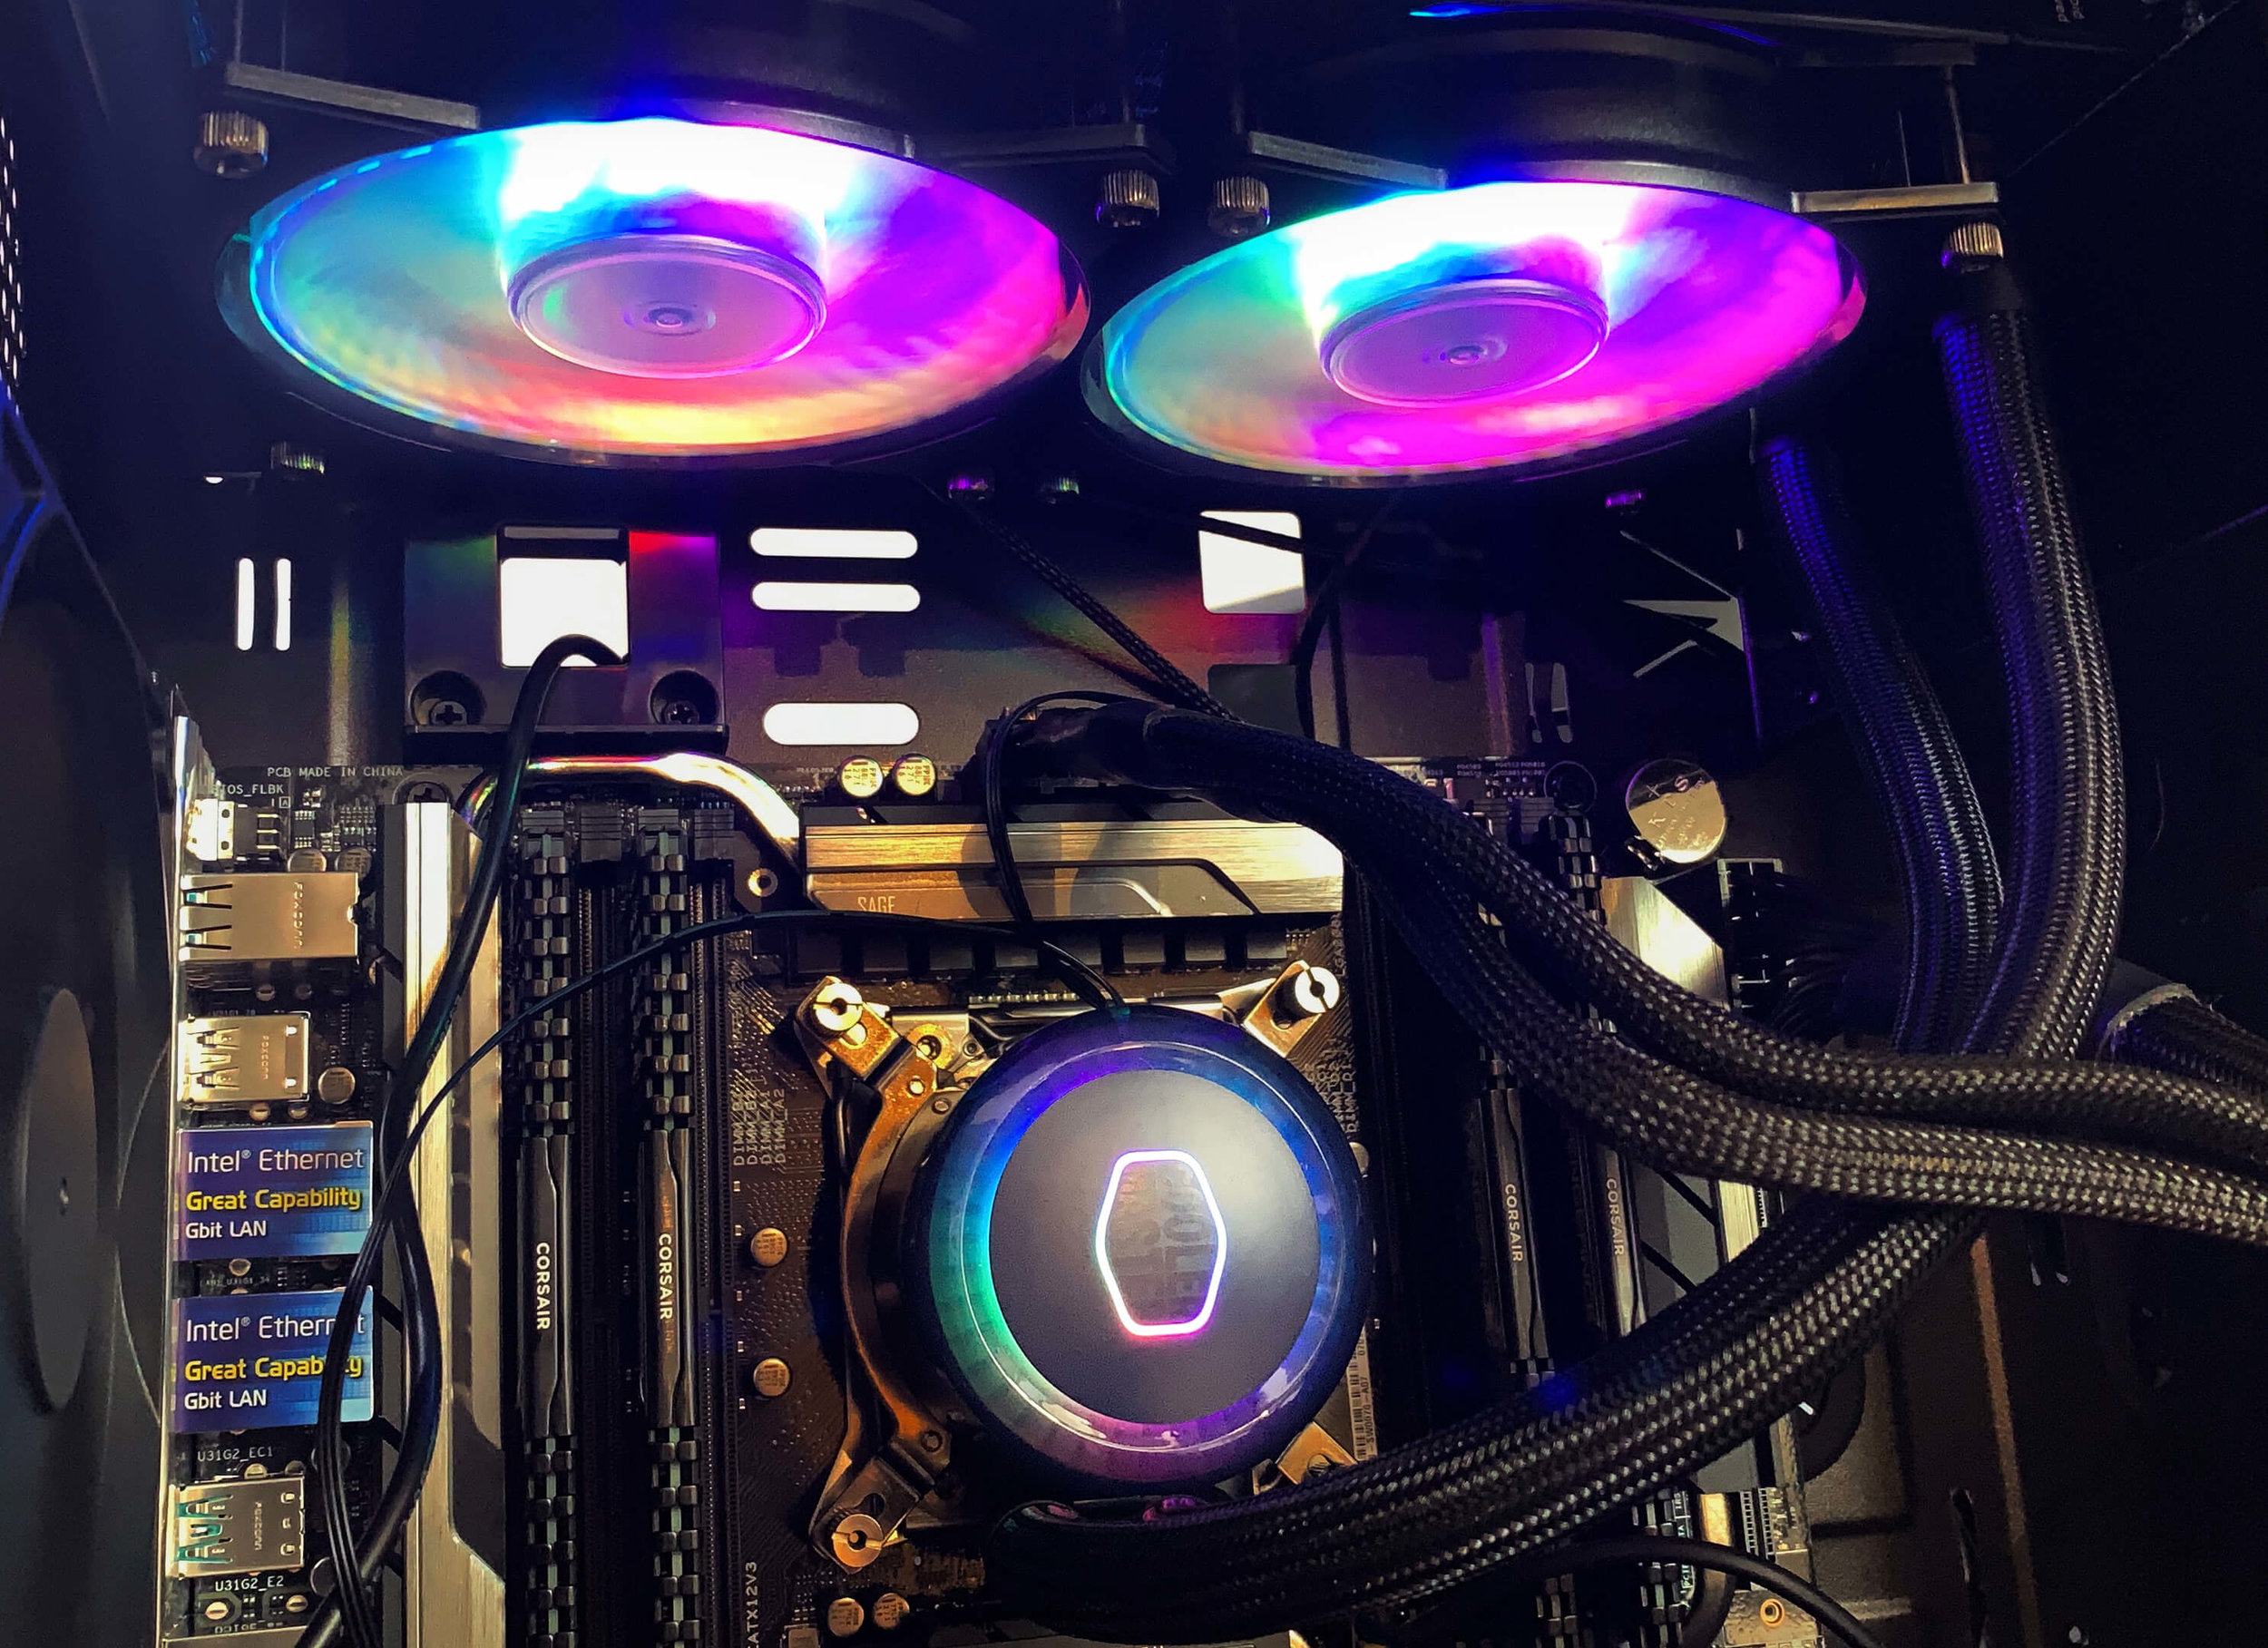 Custom-Built Computers - We build our custom computers right here in the shop and only use top-tier, carefully selected components, researched and tested for compatibility, reliability and performance. We're so confident in our builds that we offer a two-year parts warranty, rather than the industry standard one-year.